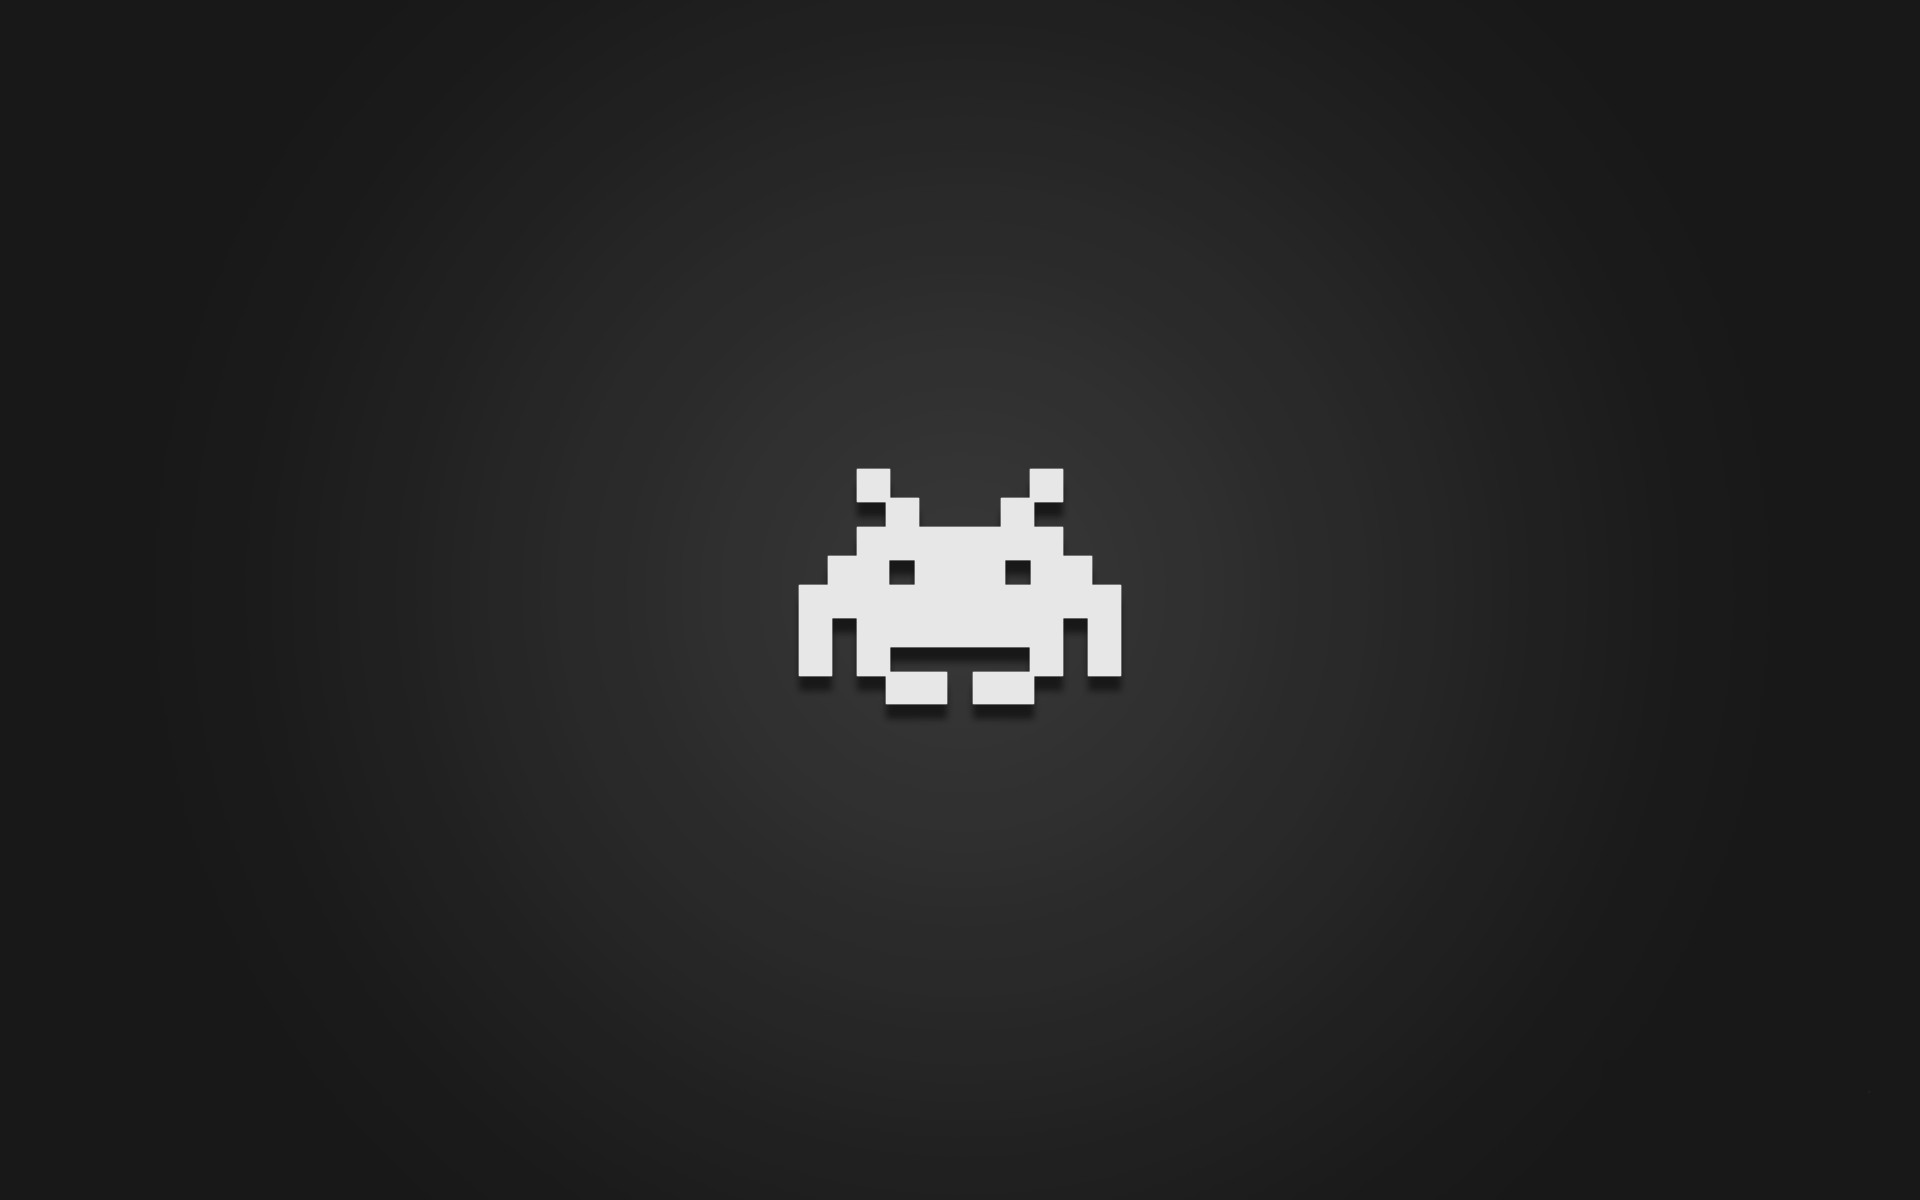 games minimalistic space invaders retro games wallpaper background .